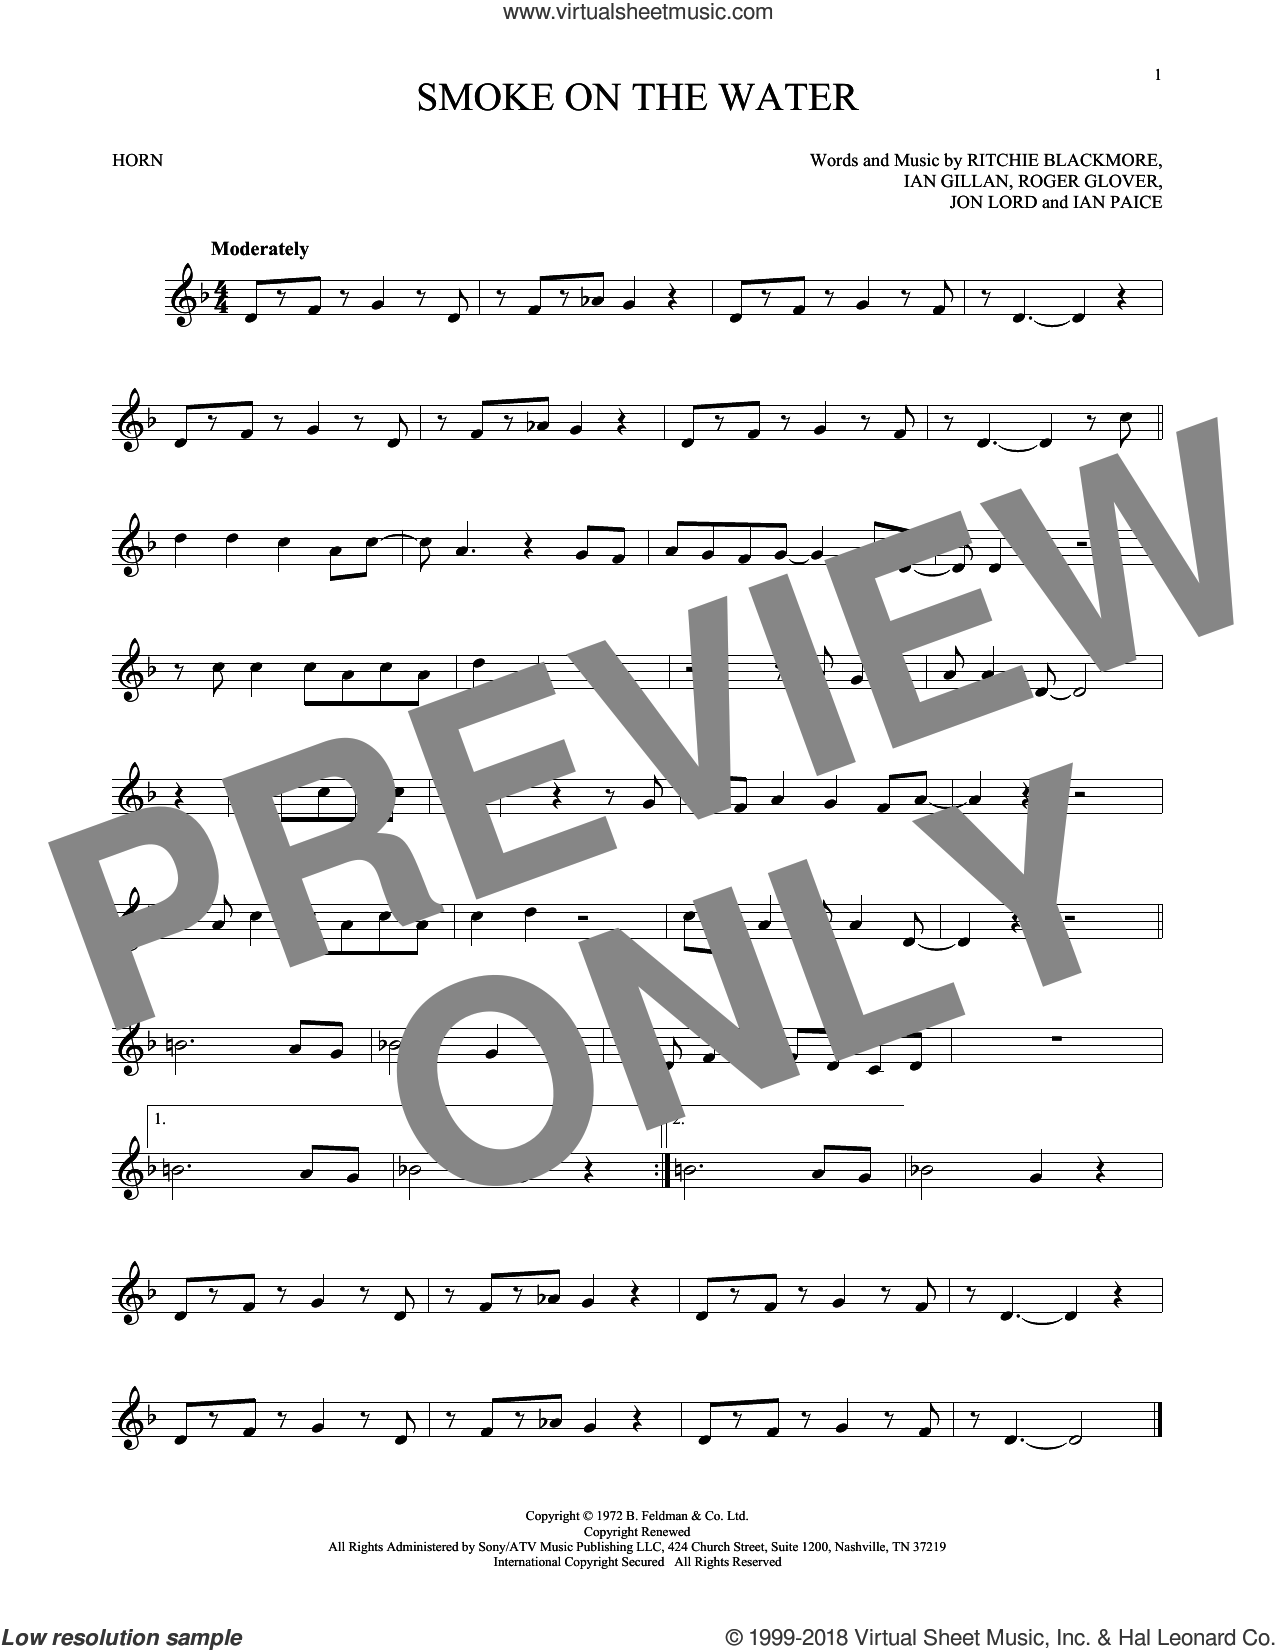 Smoke On The Water sheet music for horn solo by Deep Purple, Ian Gillan, Ian Paice, Jon Lord, Ritchie Blackmore and Roger Glover, intermediate skill level